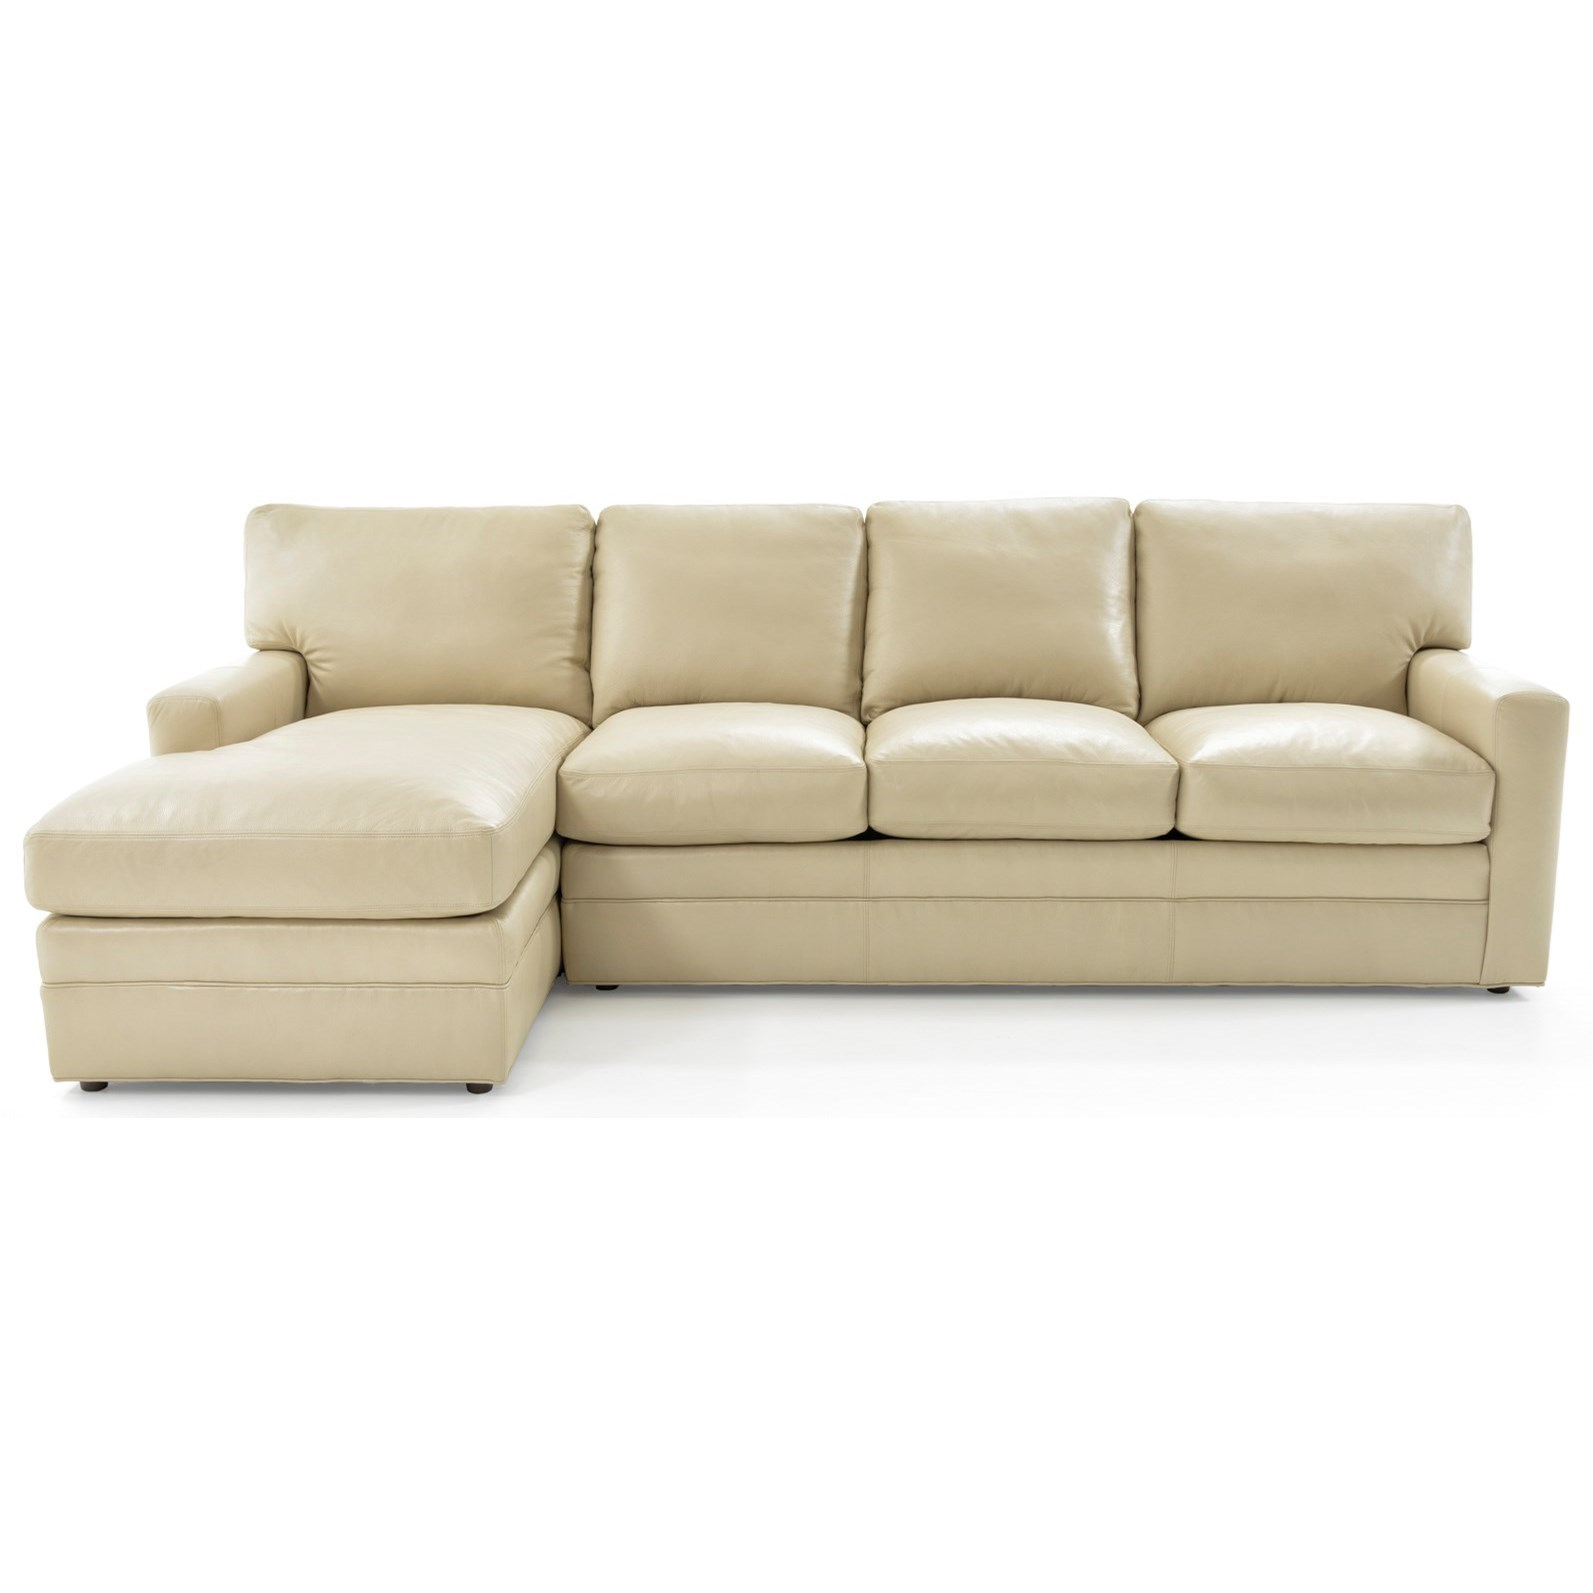 Whittemore Sherrill 4422 Pc L Shape Sectional Sofa W/ LAF Chaise ...